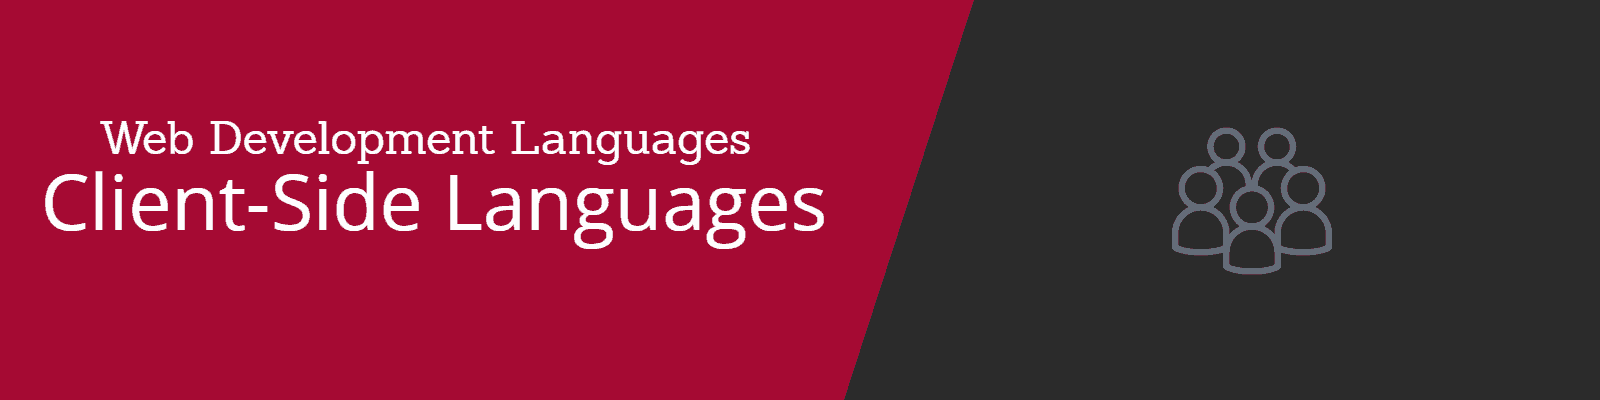 Programming and Web Development - Client-Side Languages